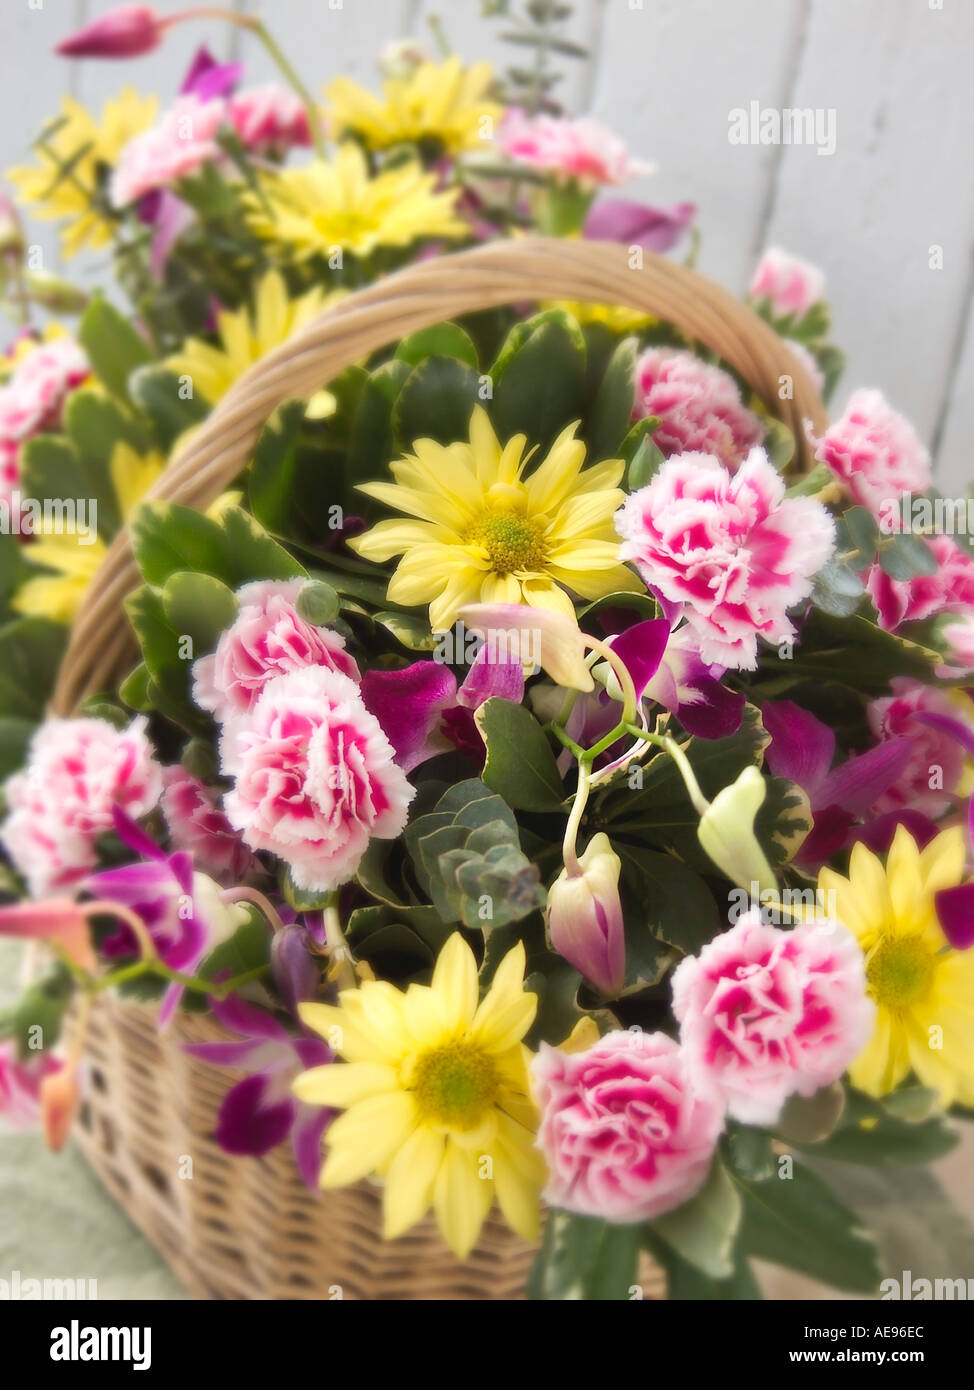 Arrangement Of Pink And Yellow Spring Flowers In Basket Against